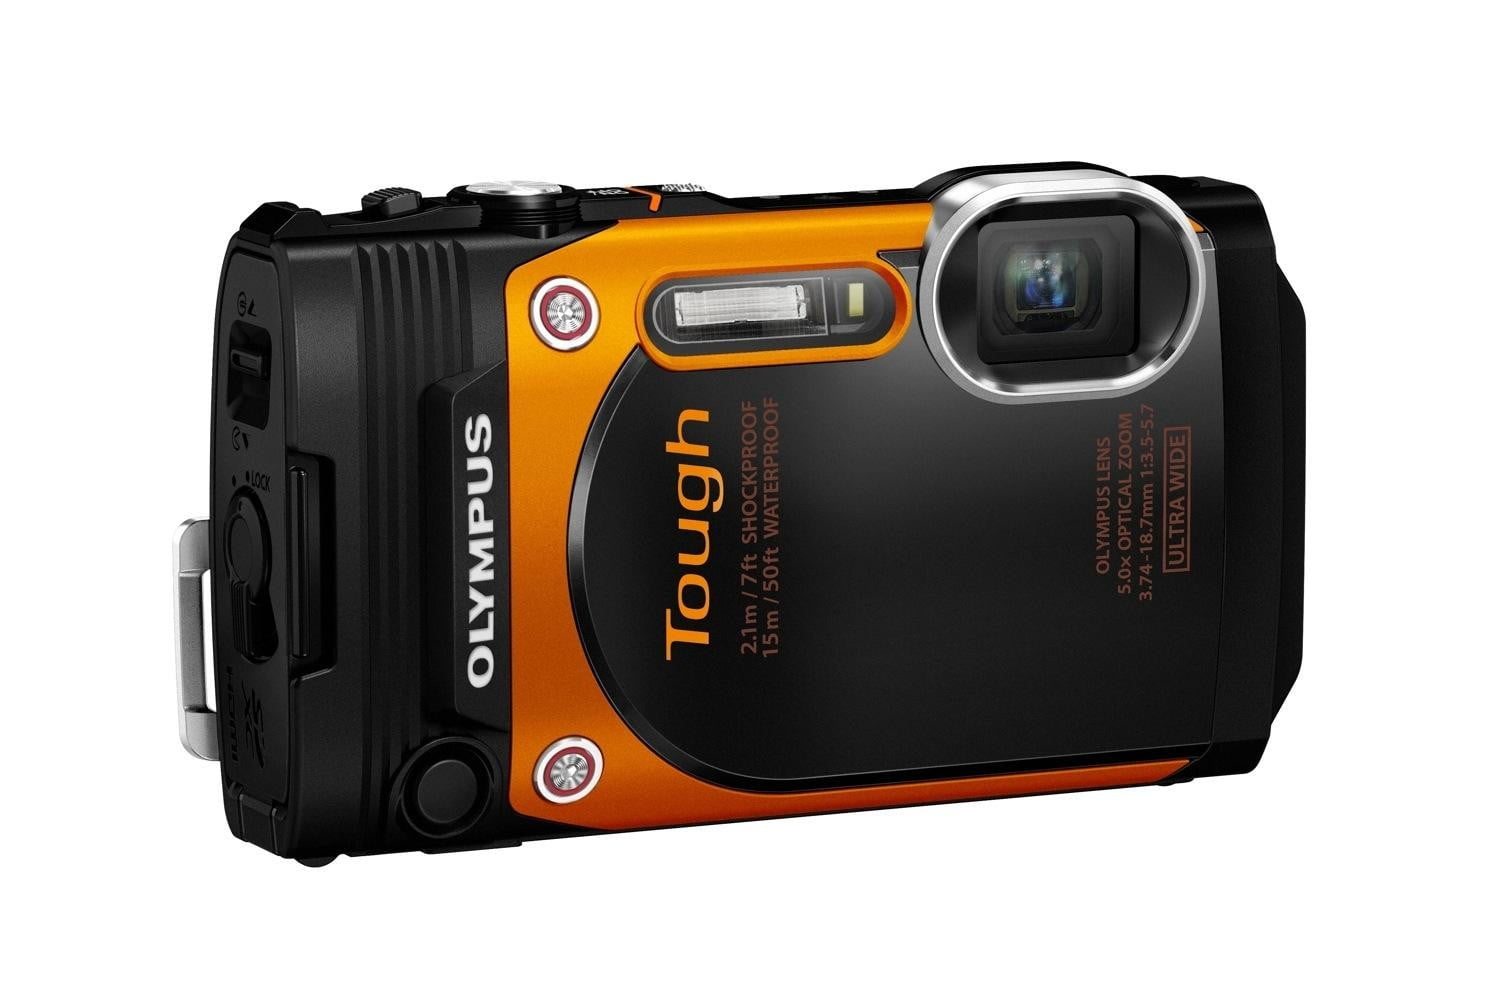 olympus new rugged tg 860 swims deeper now wi fi org left side